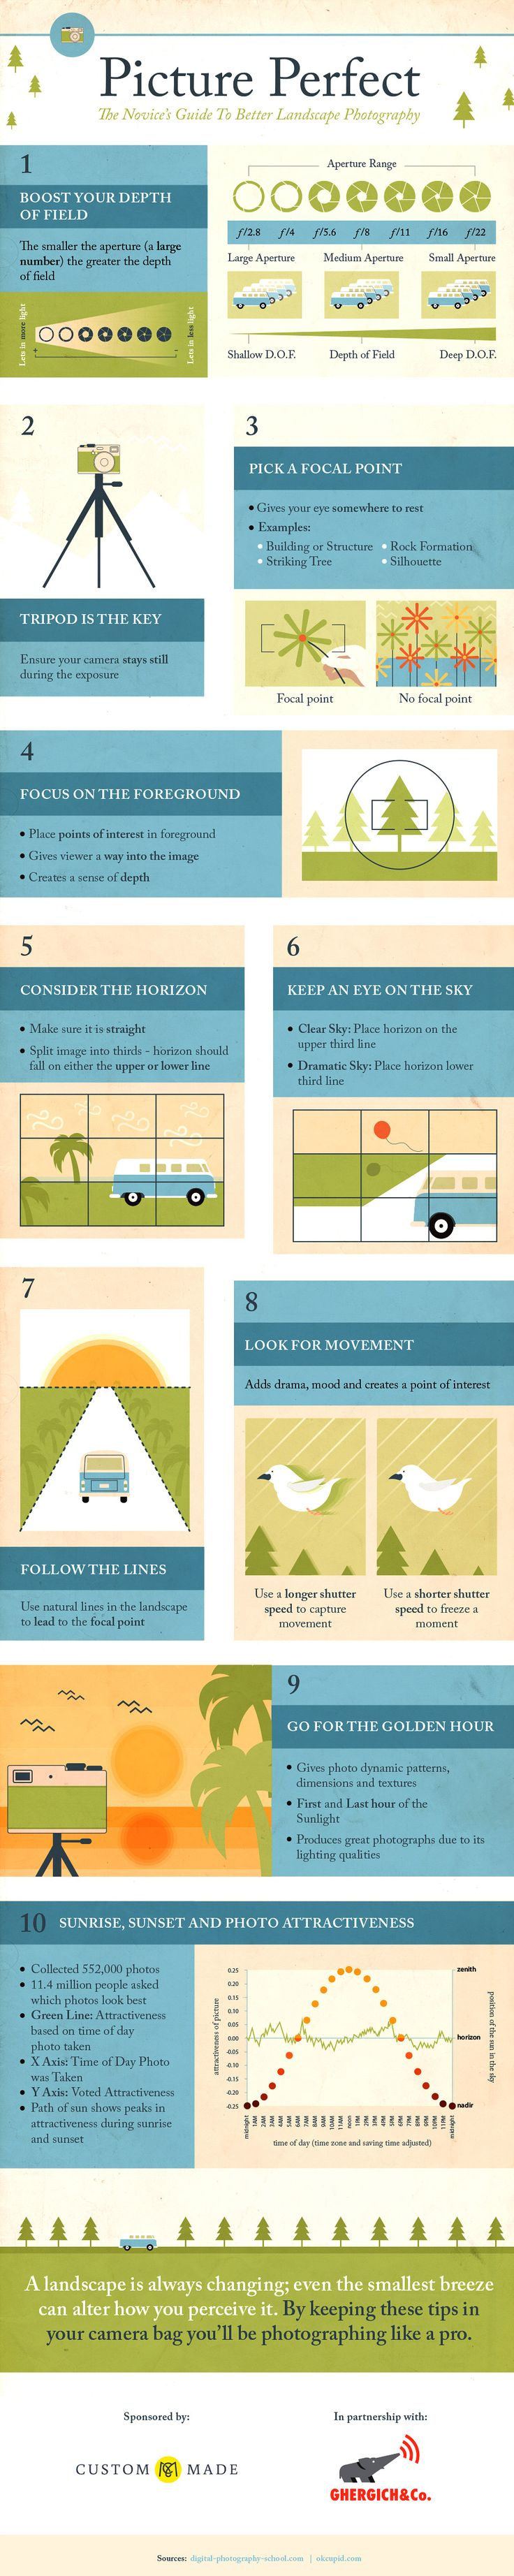 Picture Perfect Infographic - The Novice's Guide to better Landscape Photography (14)